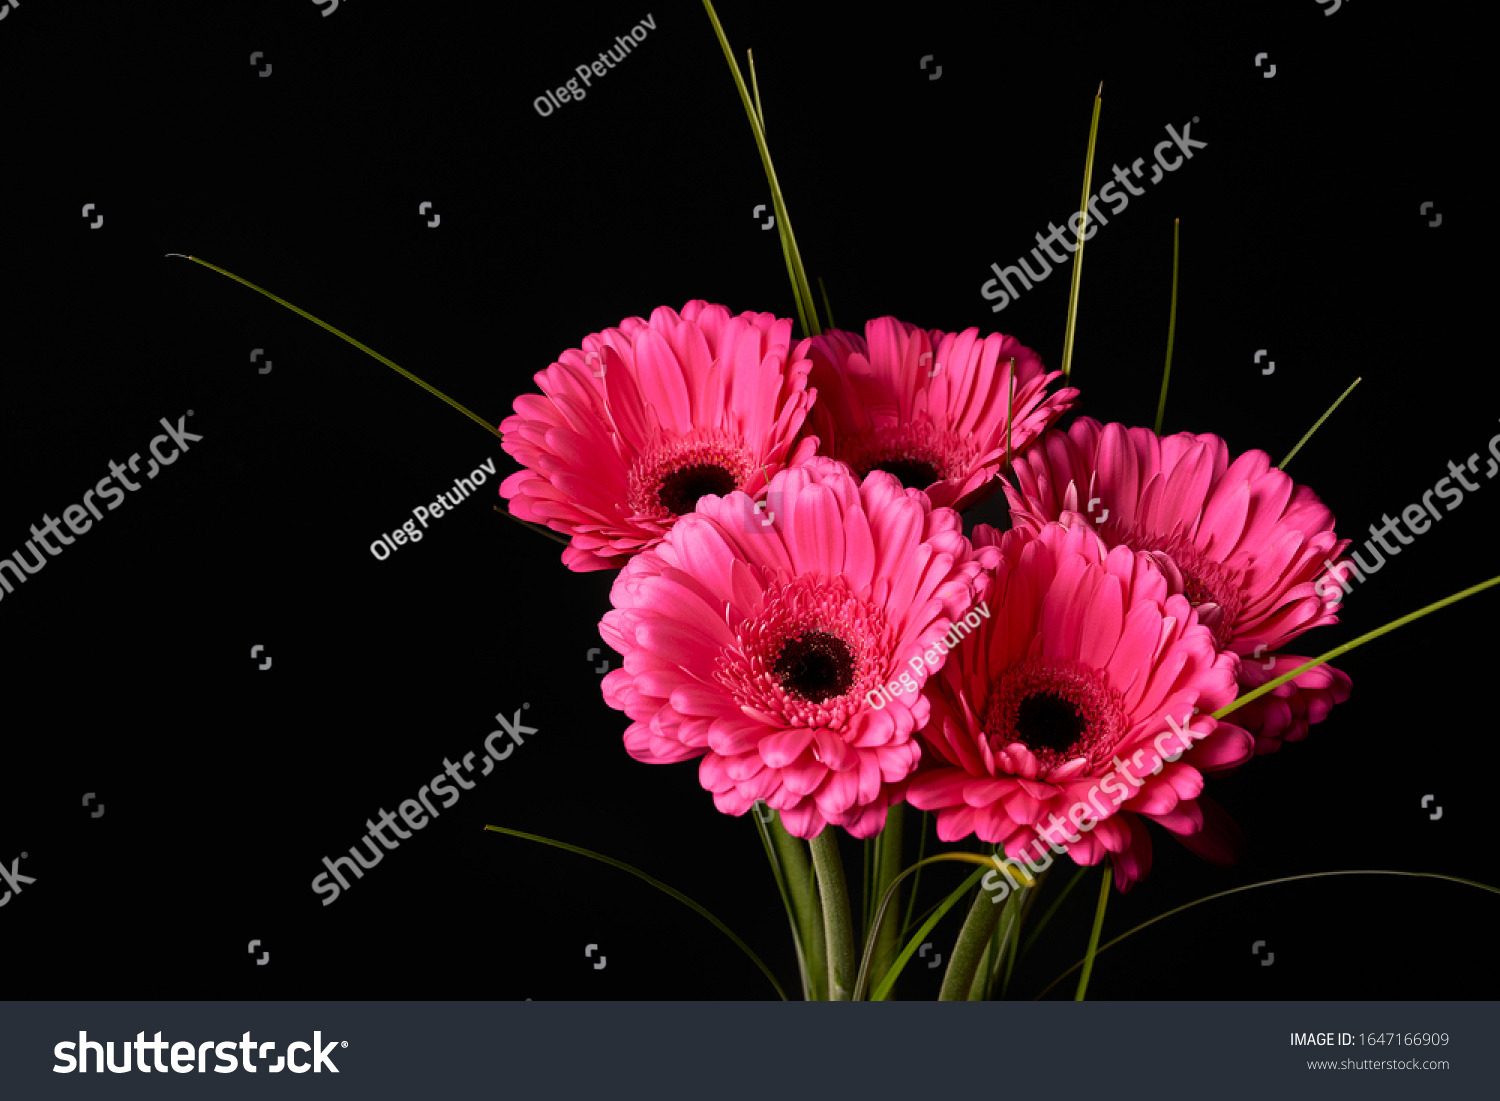 Beautiful blooming pink gerbera daisy flower on black background. #1647166909